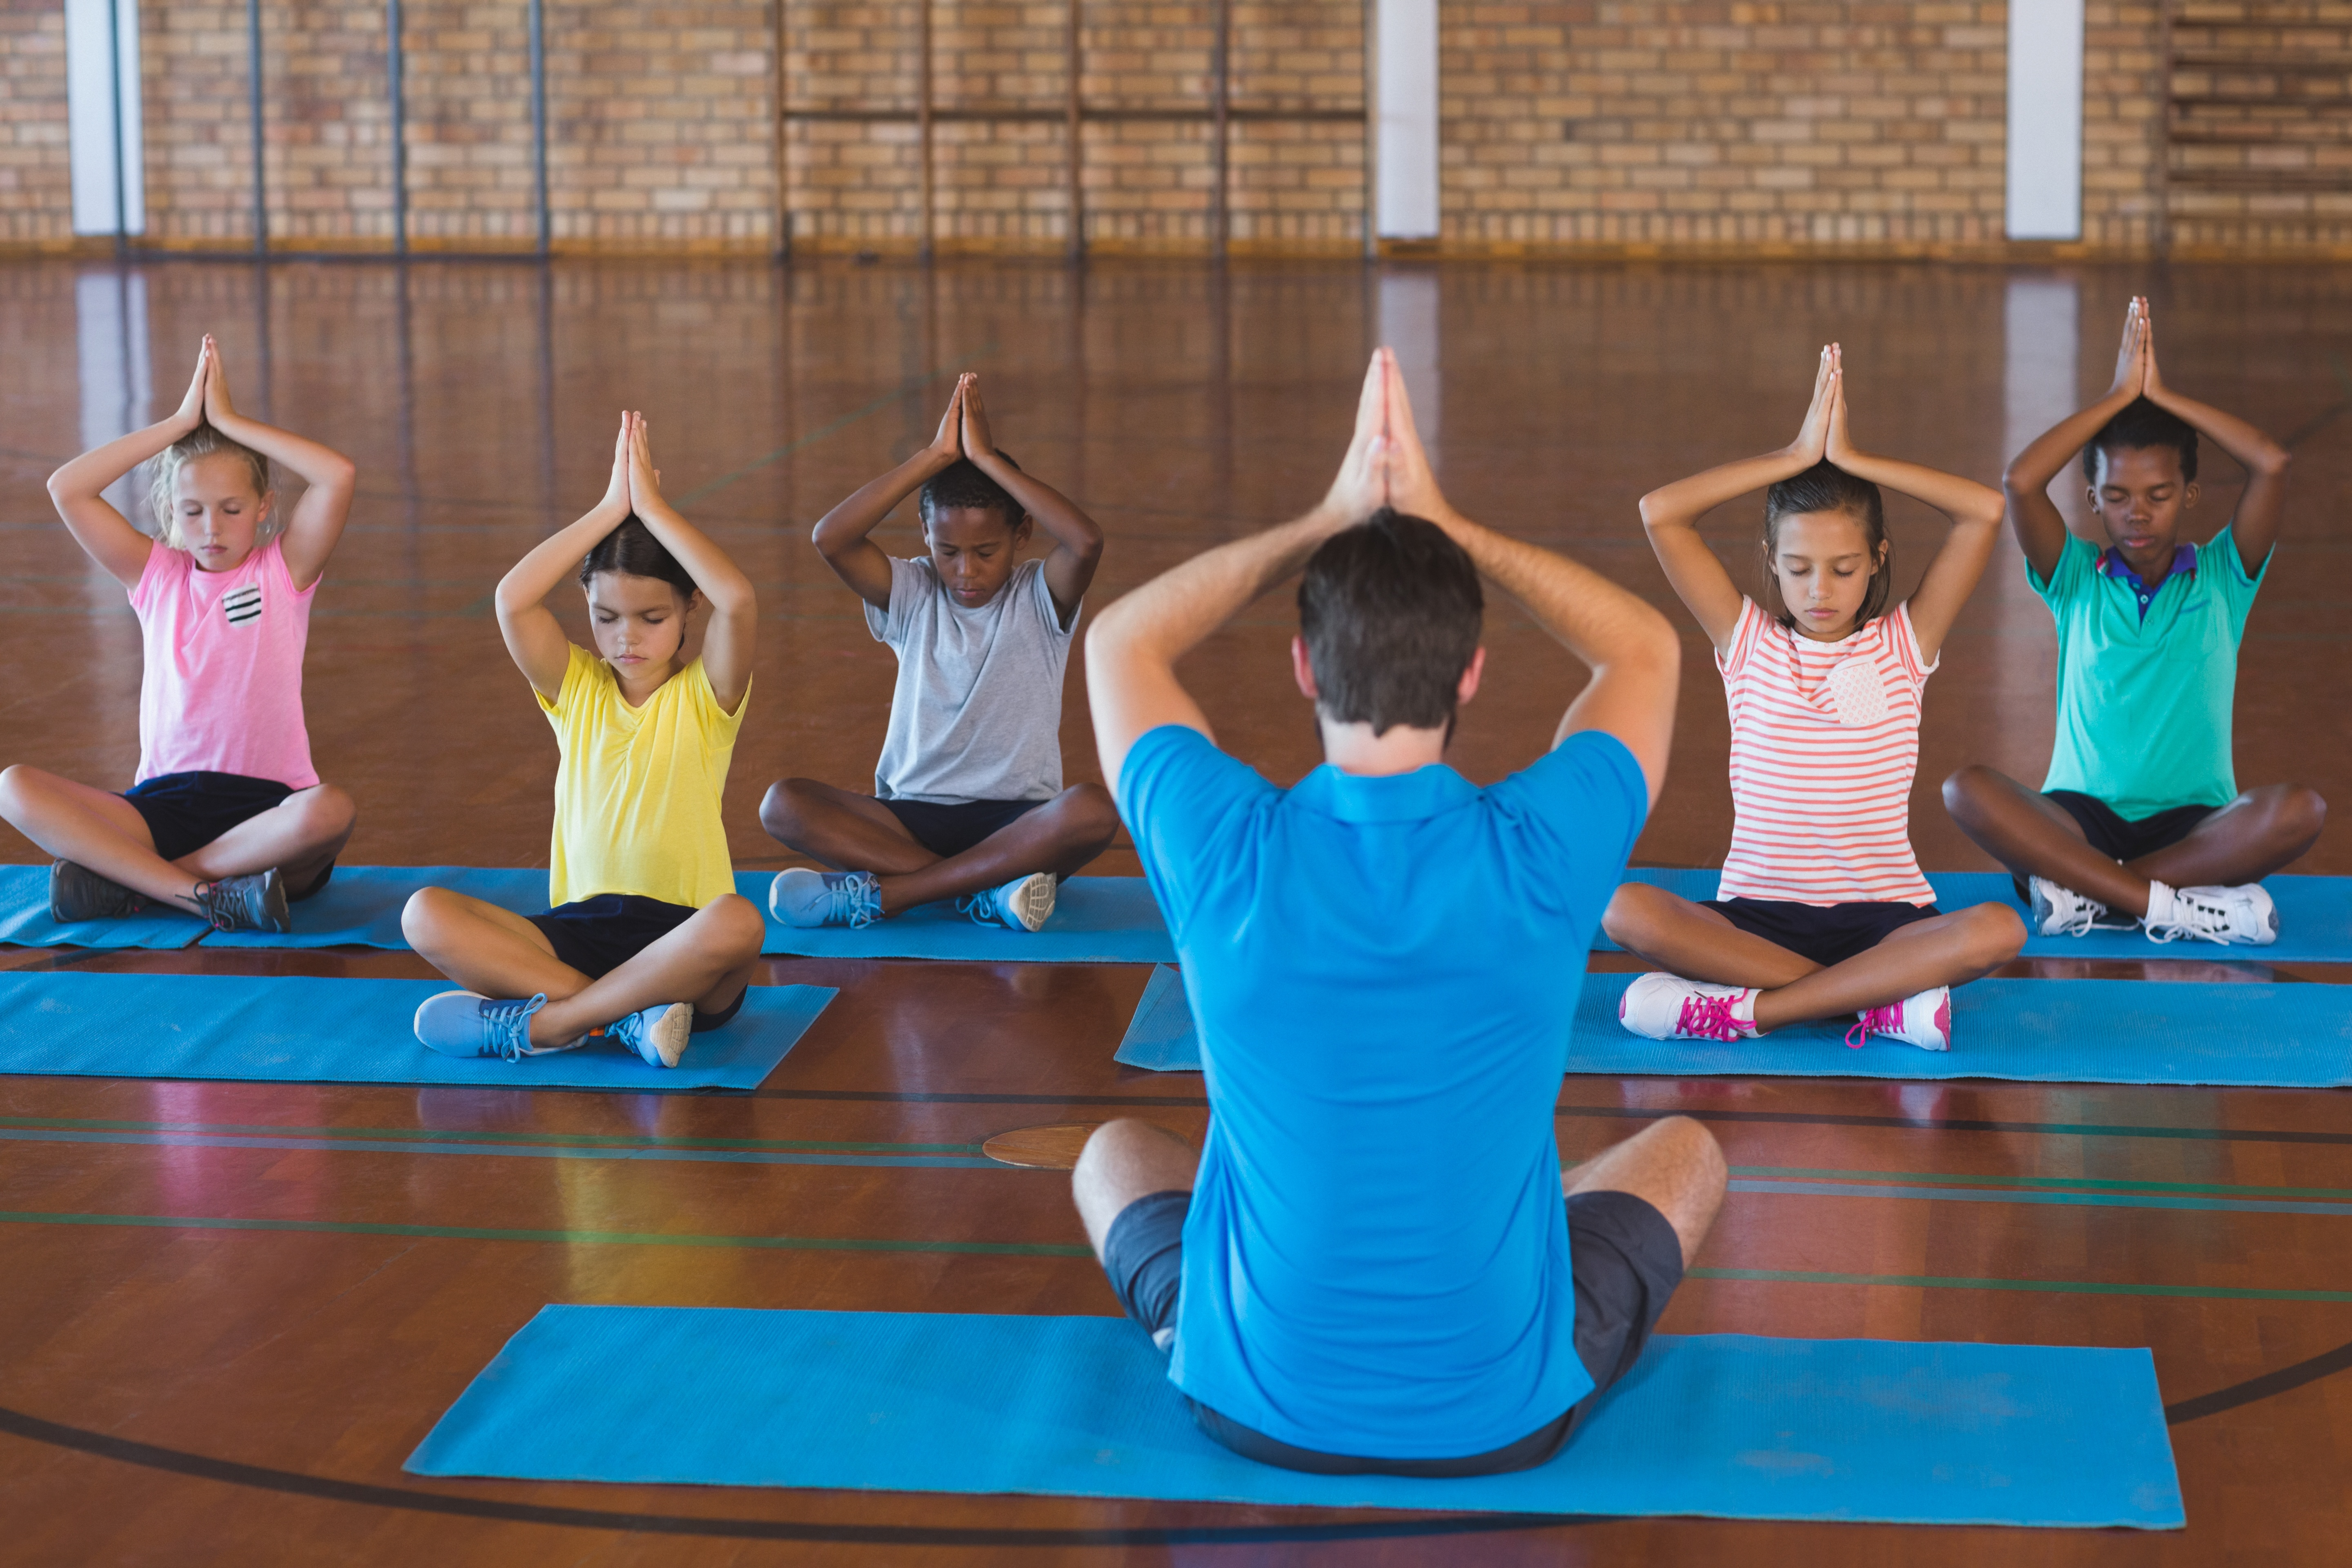 kids practicing yoga at school with teacher to reduce stress and anxiety